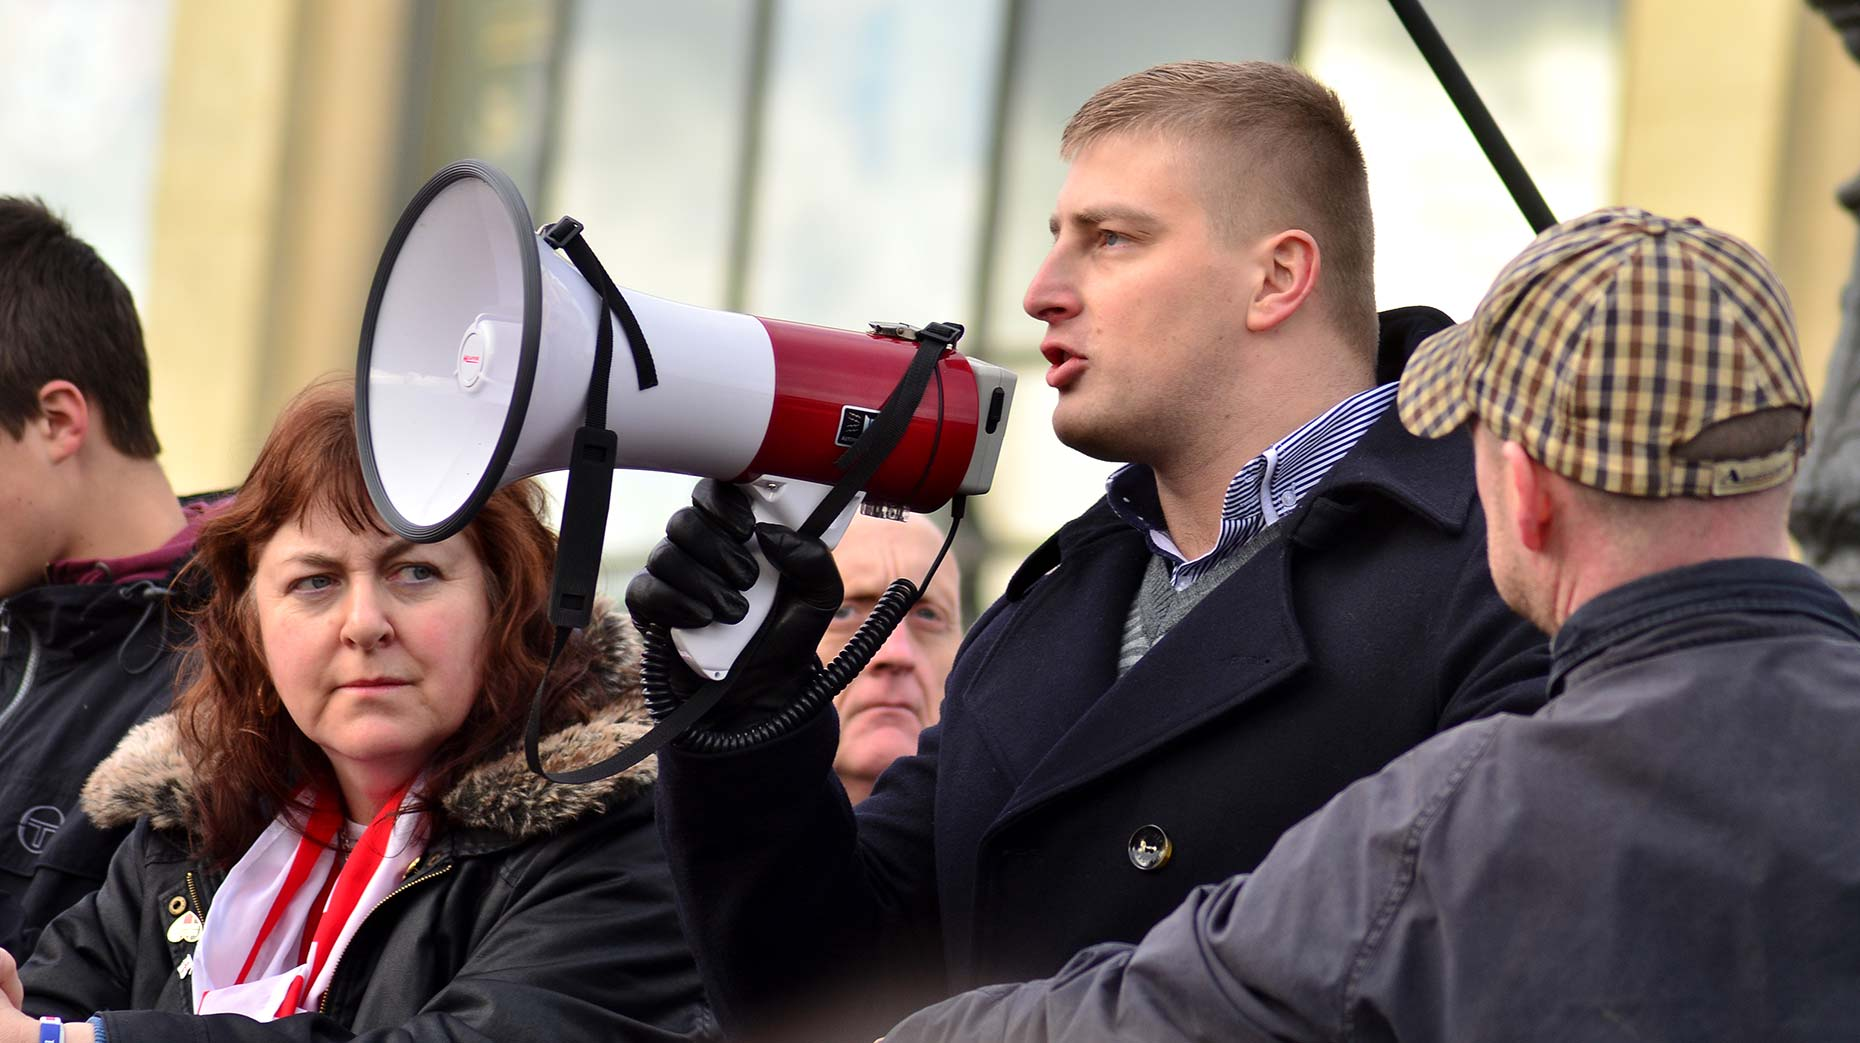 Lincolnshire Eastern European community representative Igor Kartel briefly spoke at the anti-mosque protest in January 2014 but he was stopped by the East Anglian Patriots. Photo: Steve Smailes for The Lincolnite